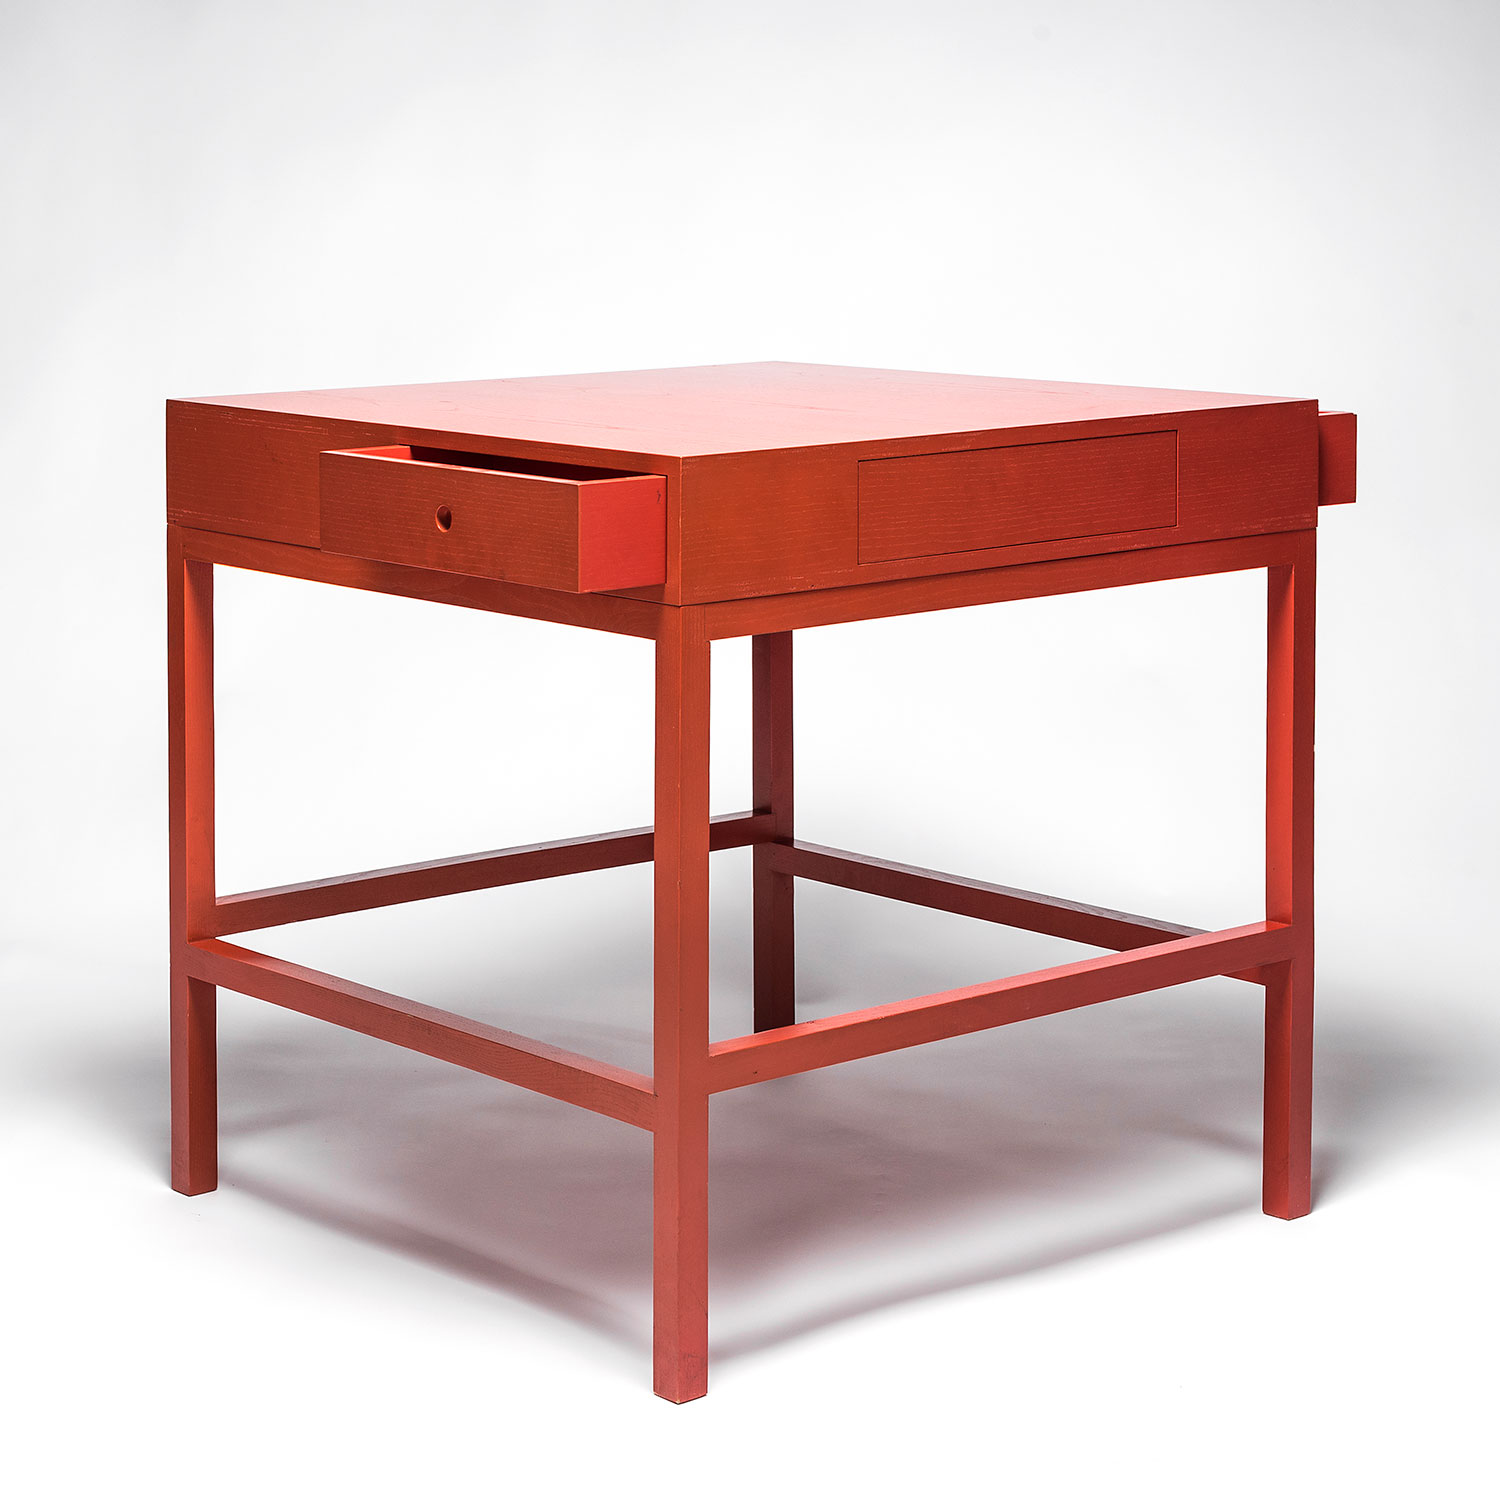 Gae Aulenti  |  Prototype table